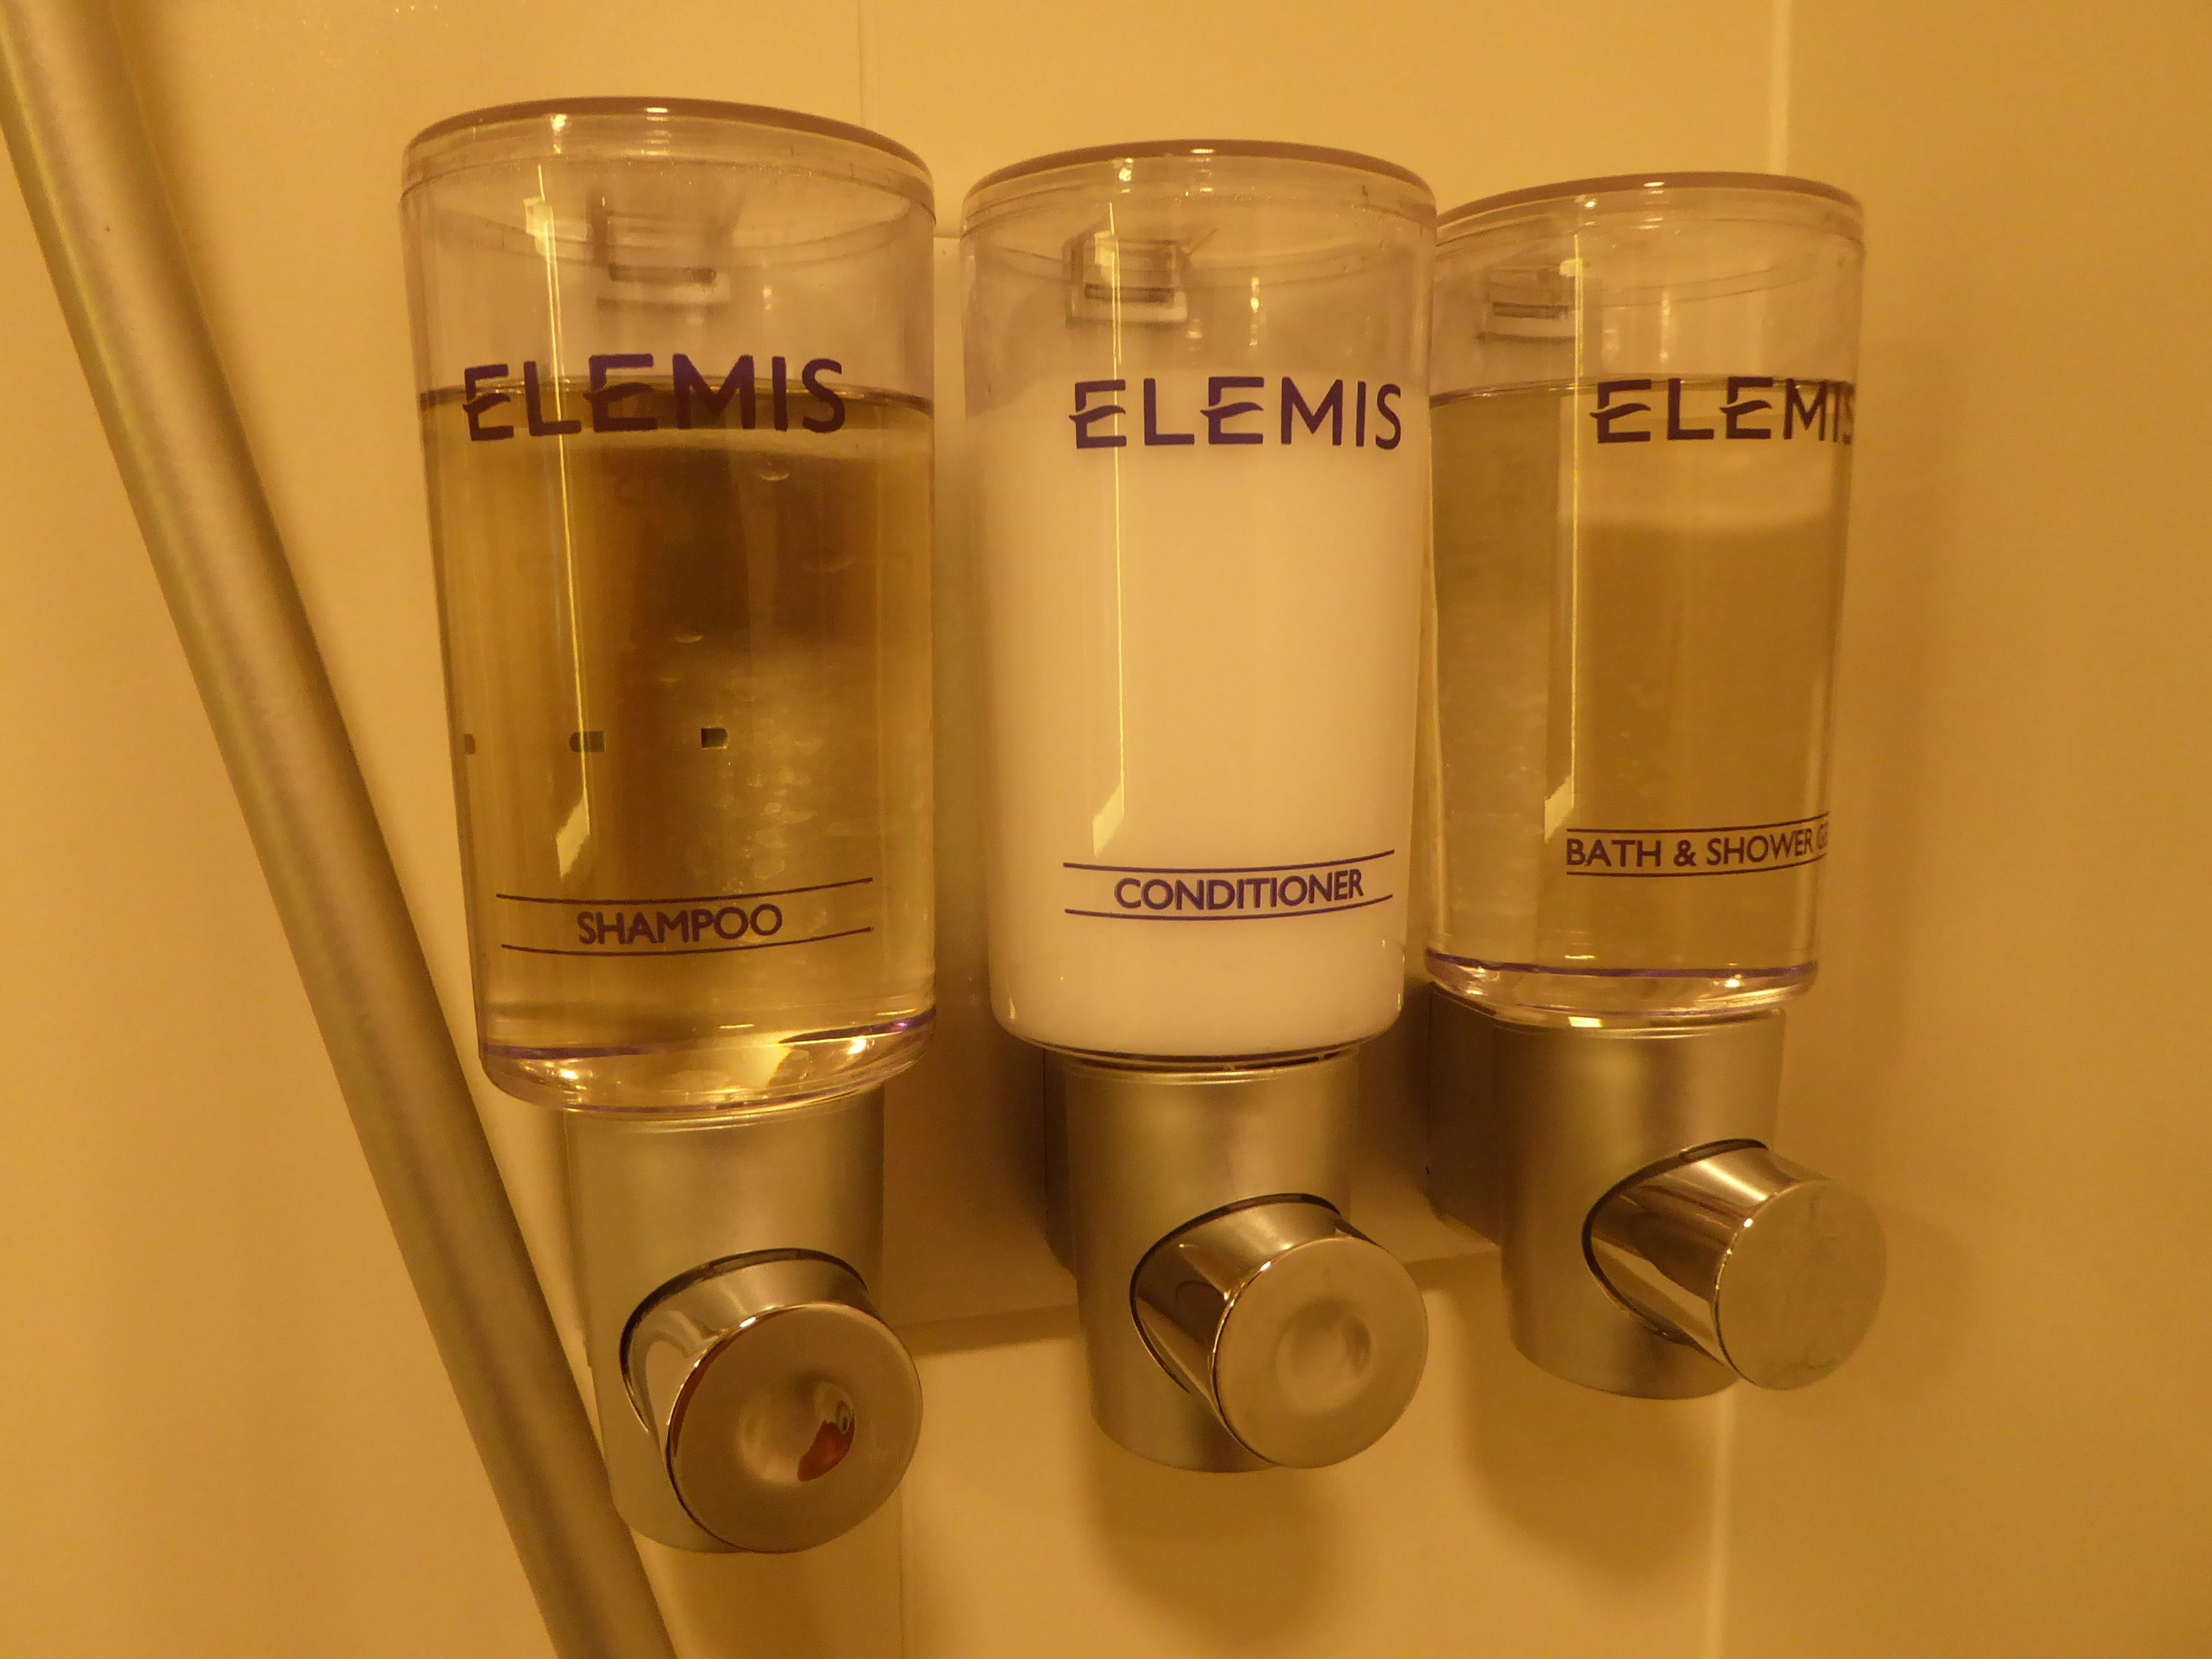 In Verandah, Ocean View and Inside cabins, there are environmentally friendly dispensers with Elemis brand shampoo, conditioner and shower gel.